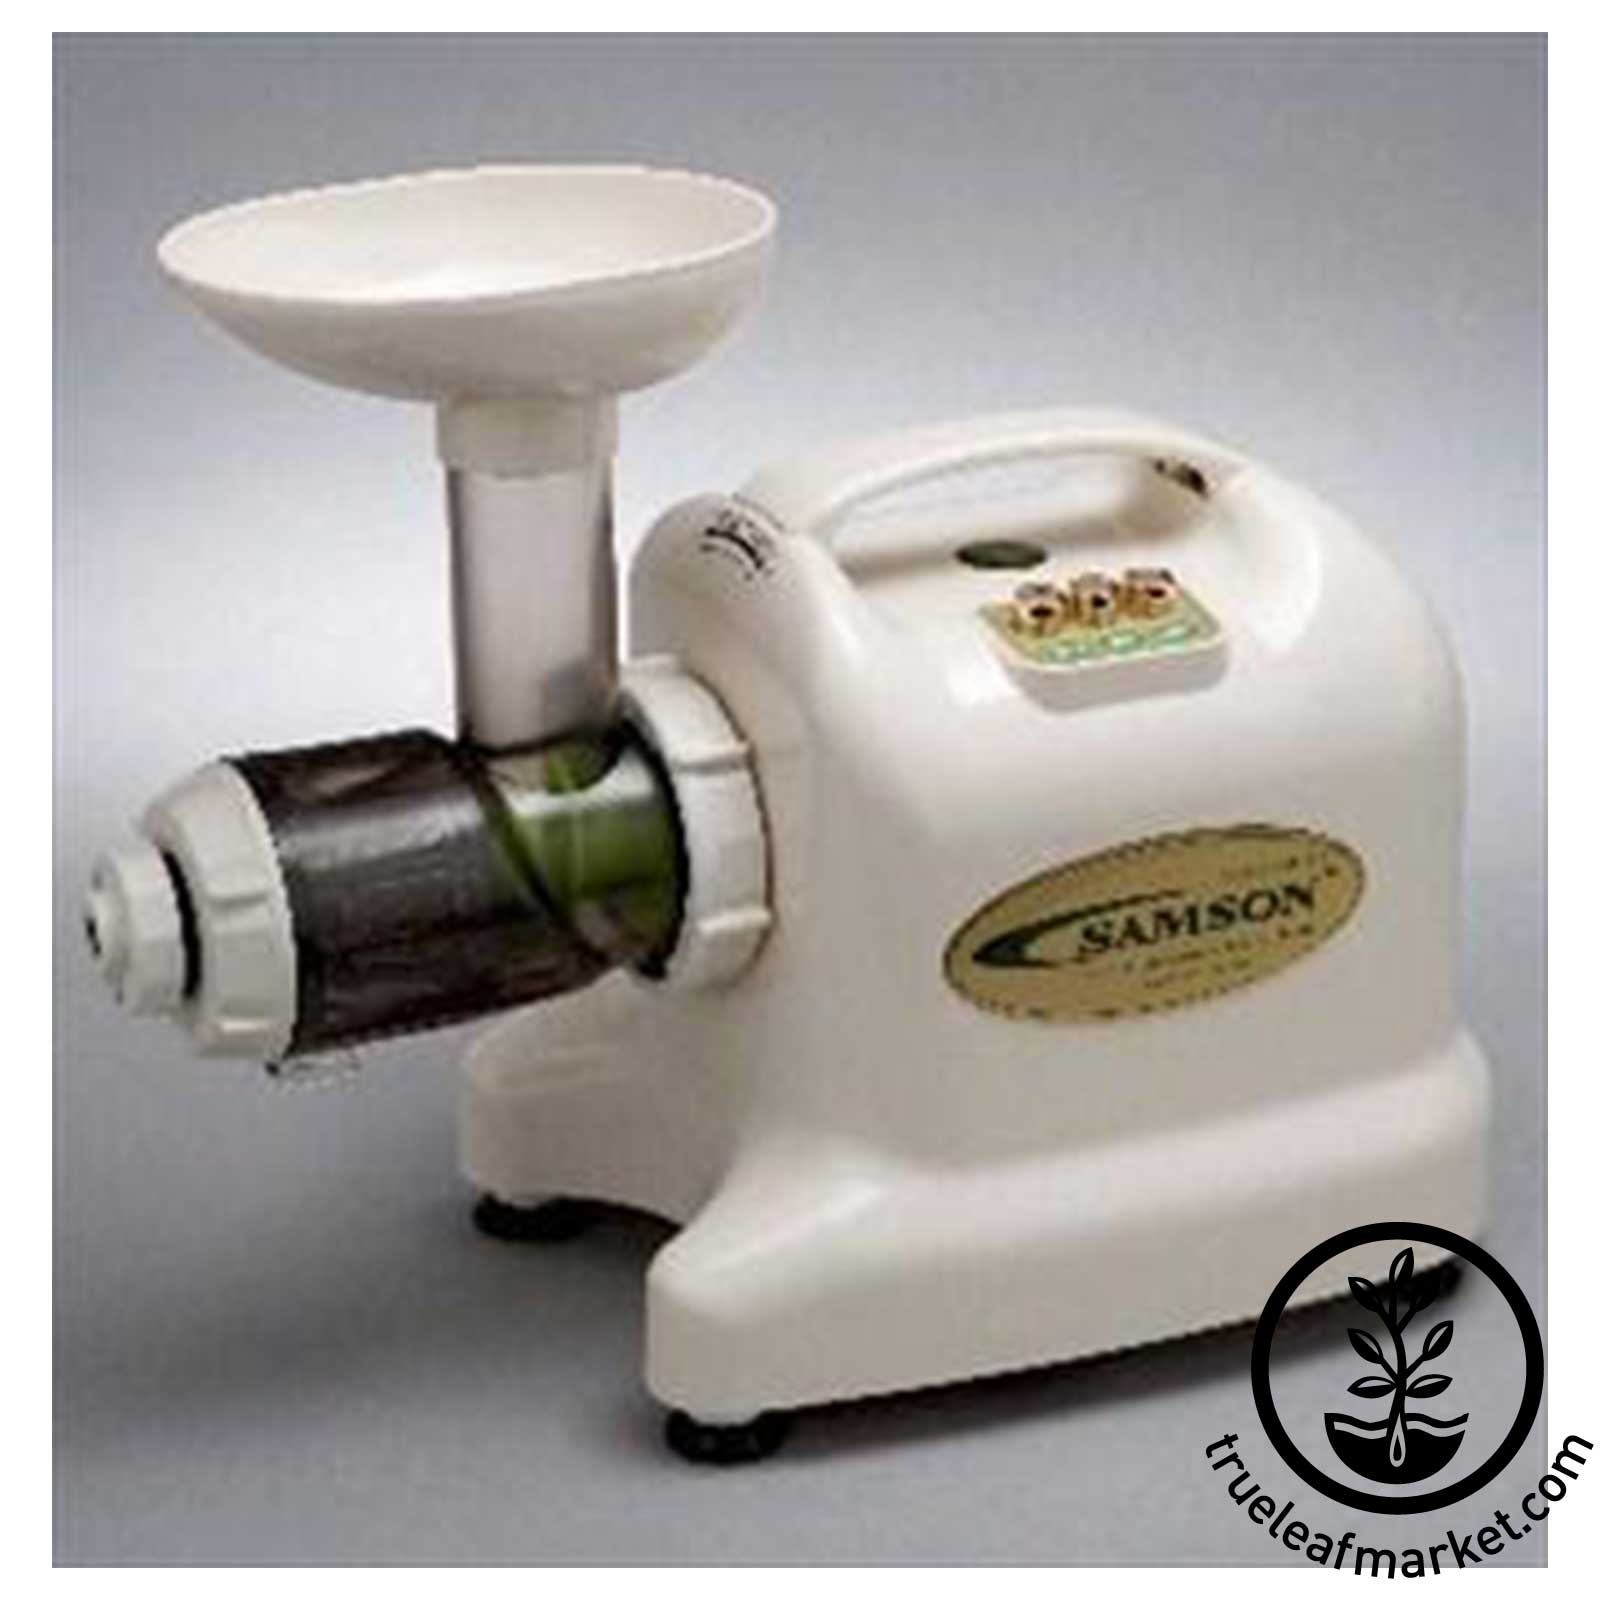 Samson 6 in 1 Juicer:  Ivory - GB9001